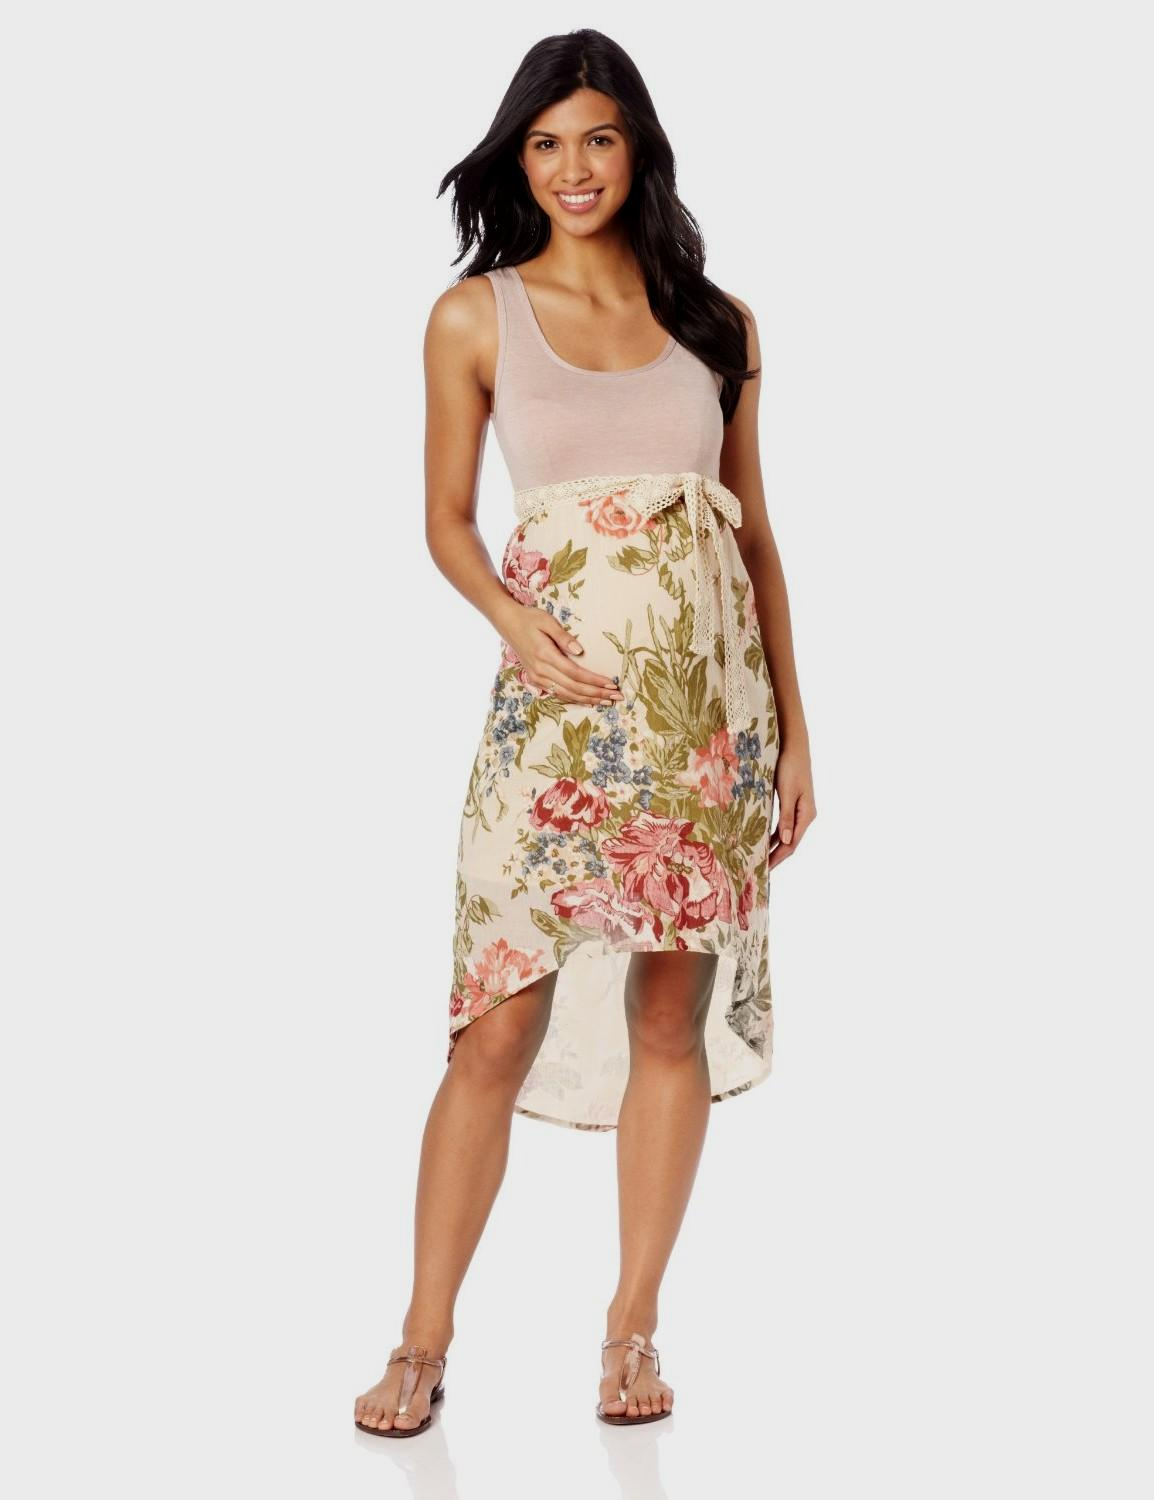 24 Beautiful Maternity Dresses For Baby Shower Pretty Inspiration